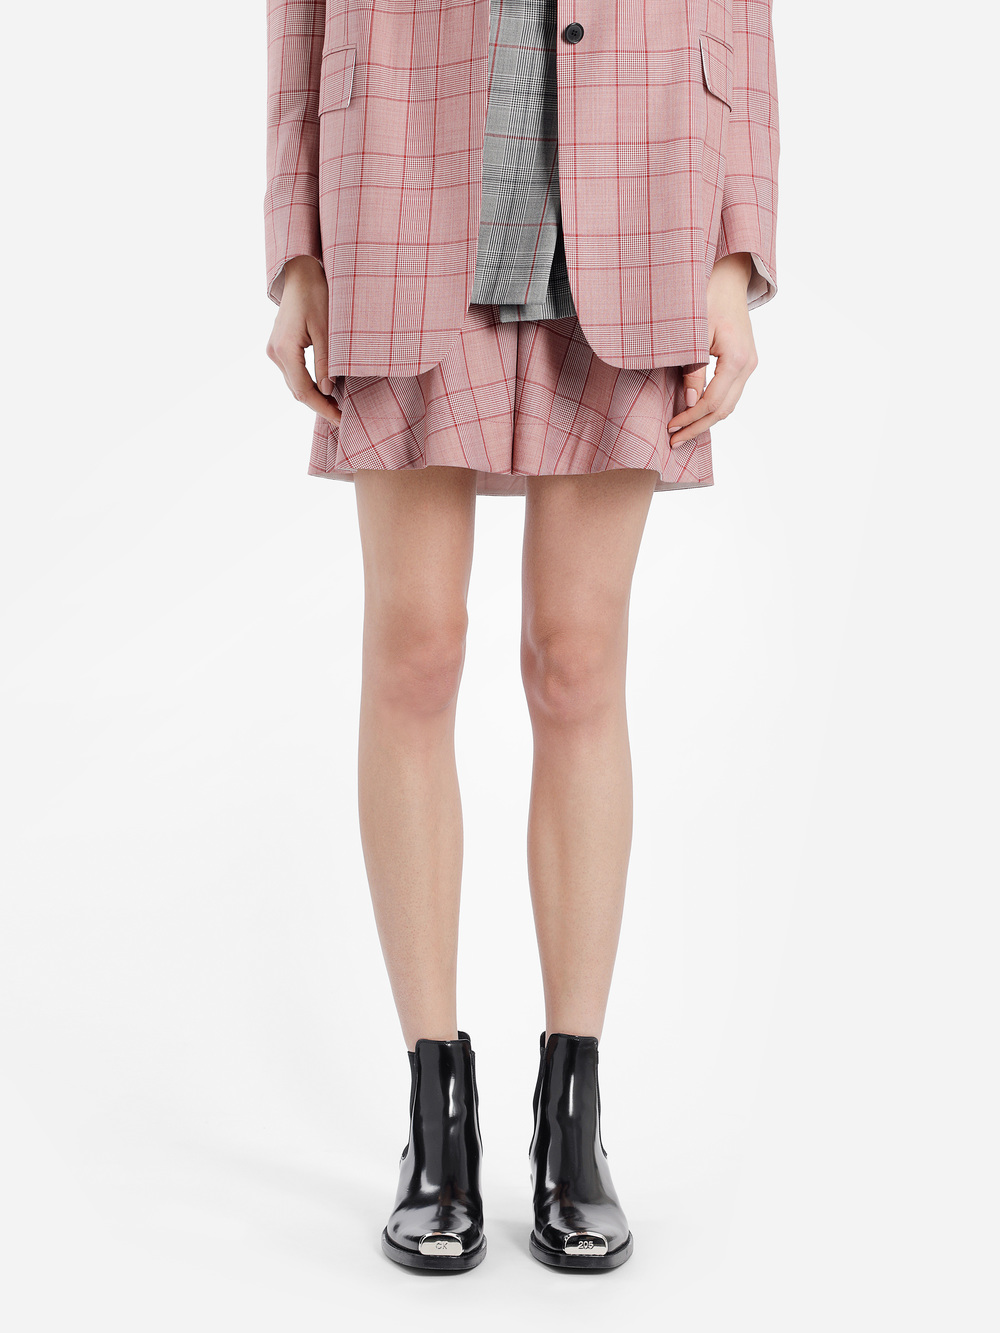 Image of Calvin Klein 205W39NYC Skirts